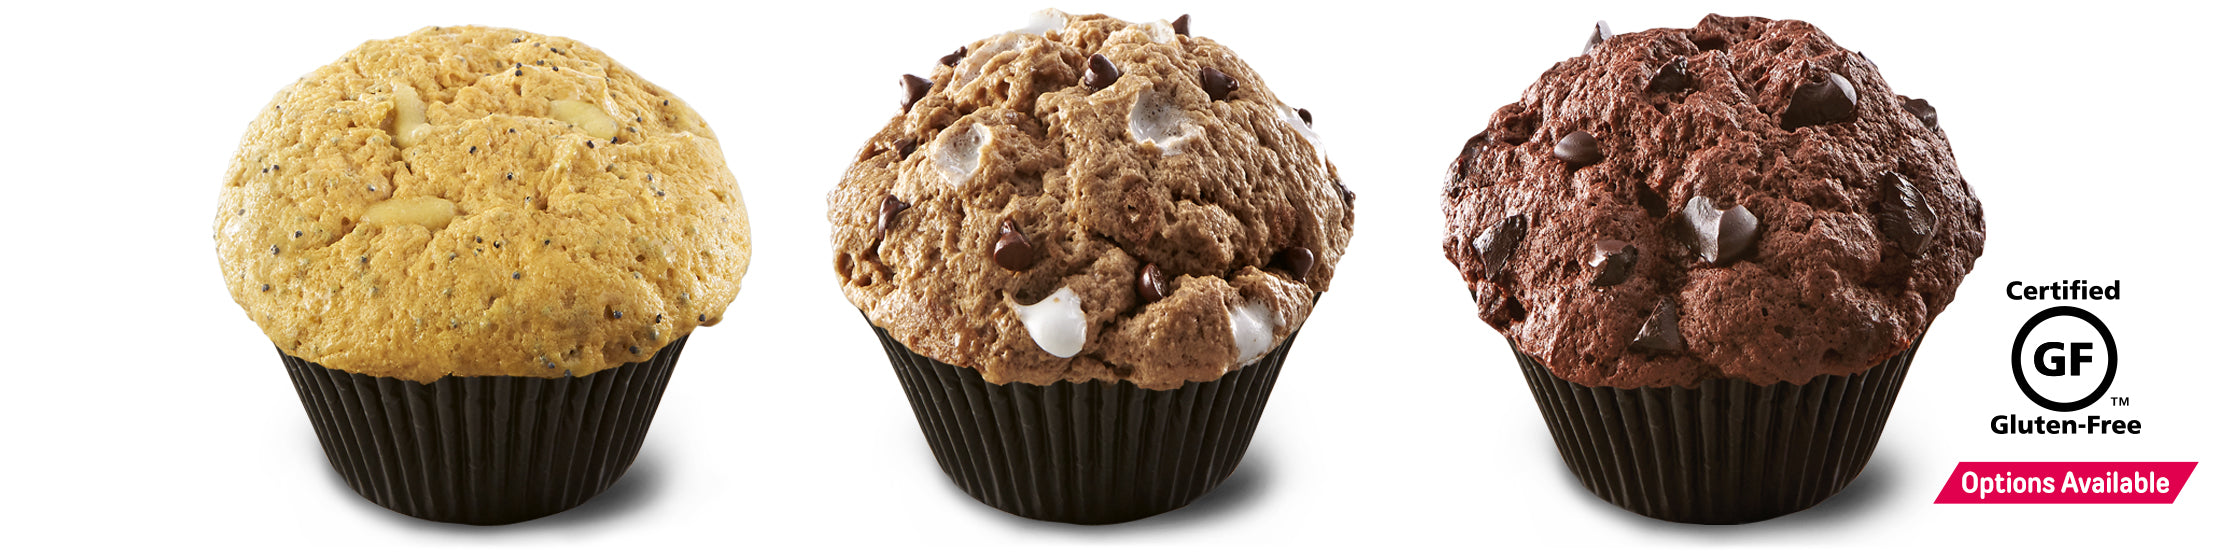 FlapJacked Mighty Muffin® with Certified Gluten-Free Options Available